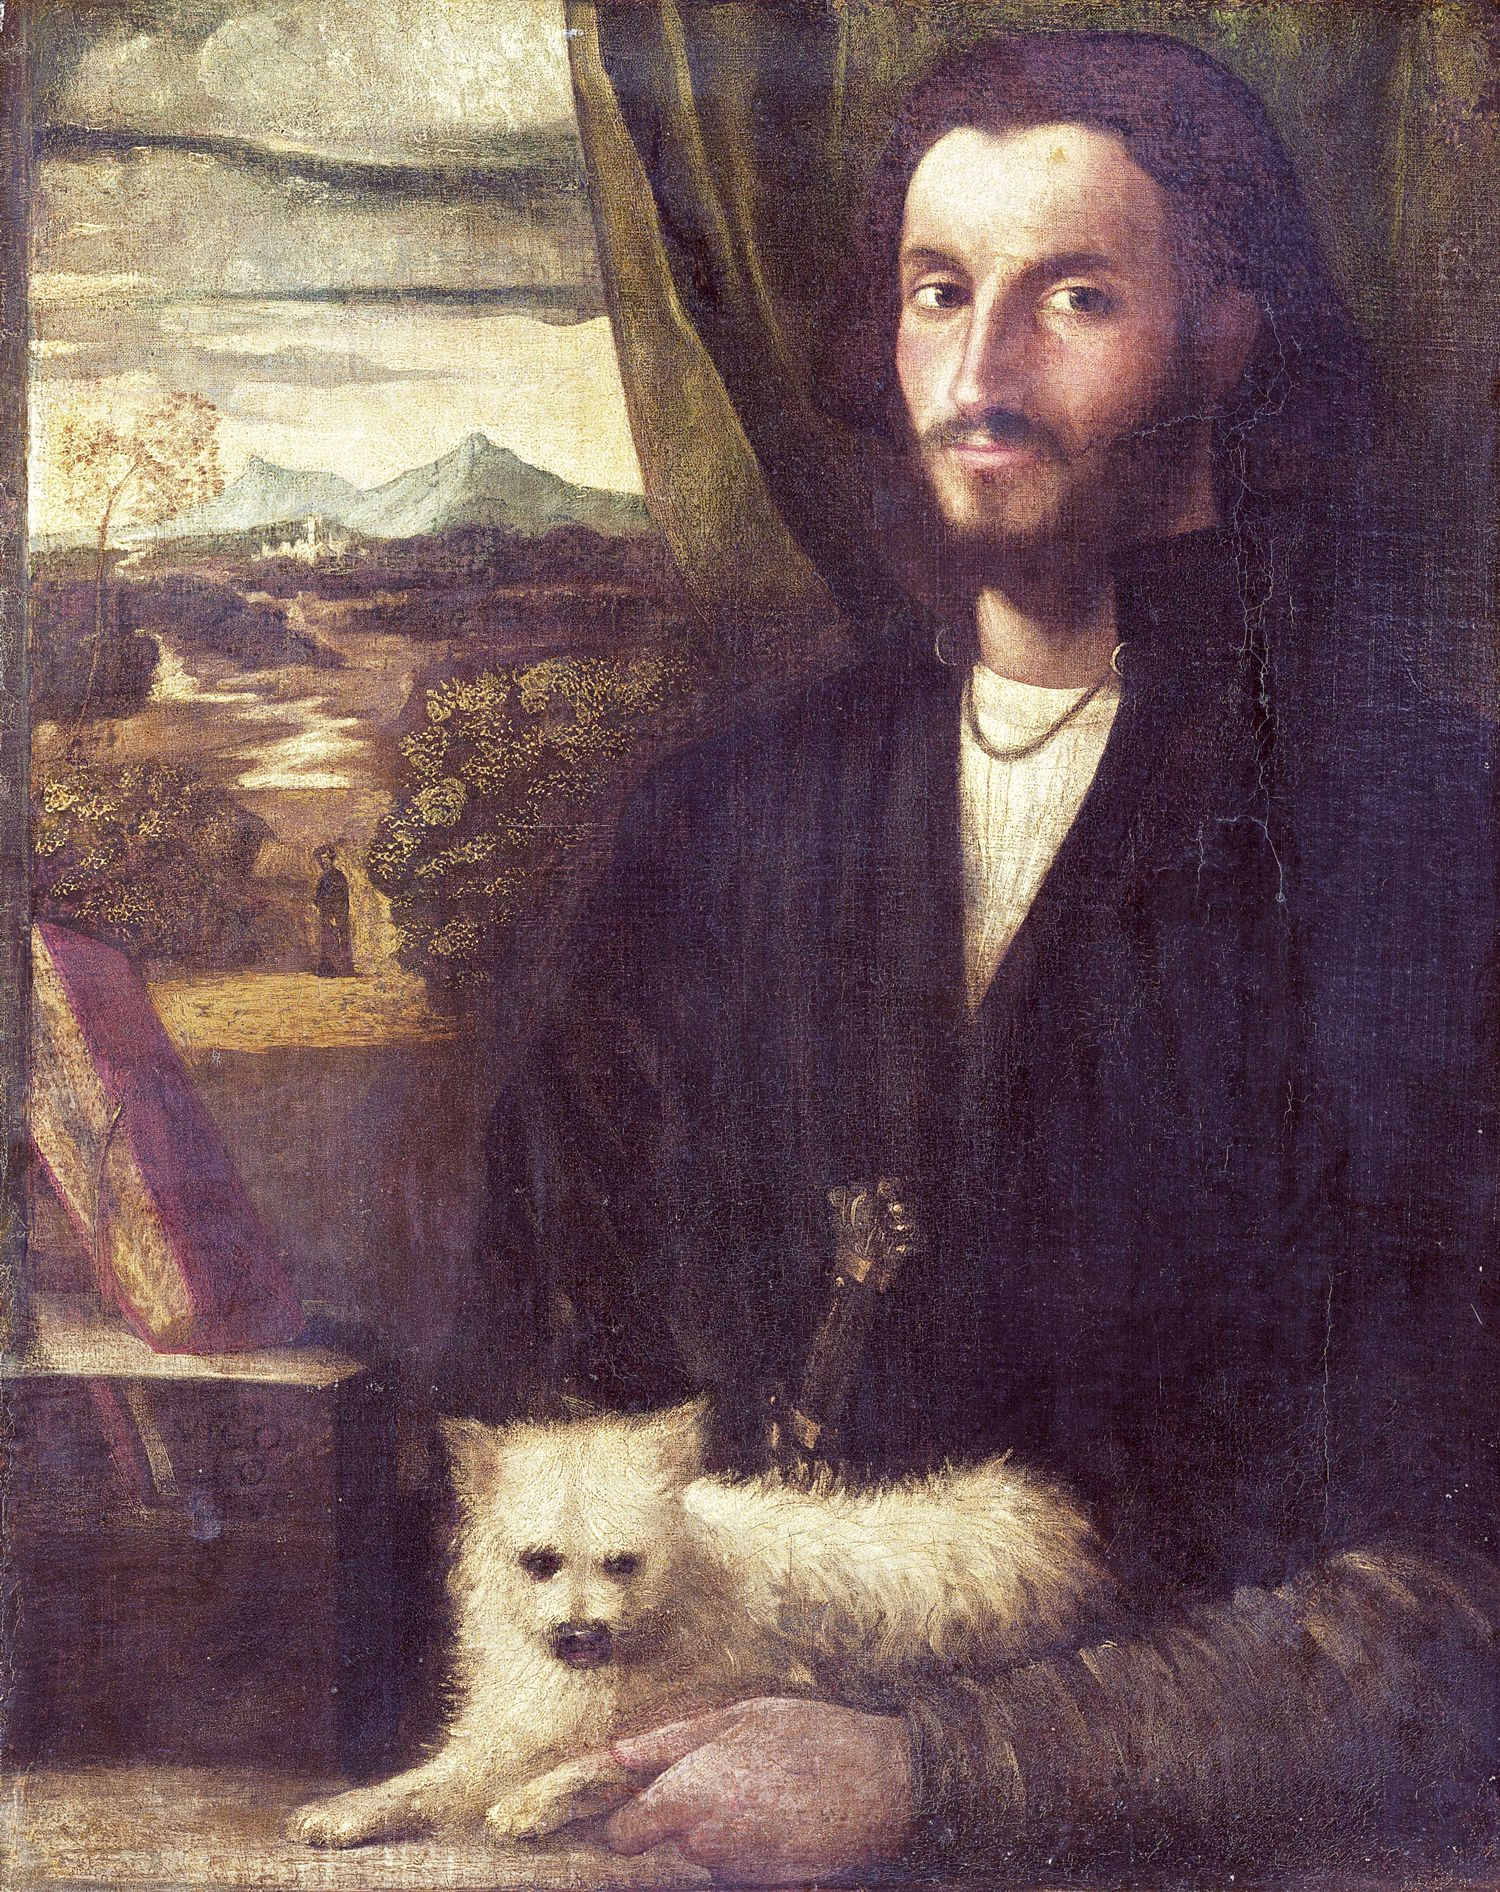 Cariani (Italian, 1485/1490 - 1547 or after ), Portrait of a Man with a Dog, c. 1520, oil on canvas, Gift of Samuel L. Fuller